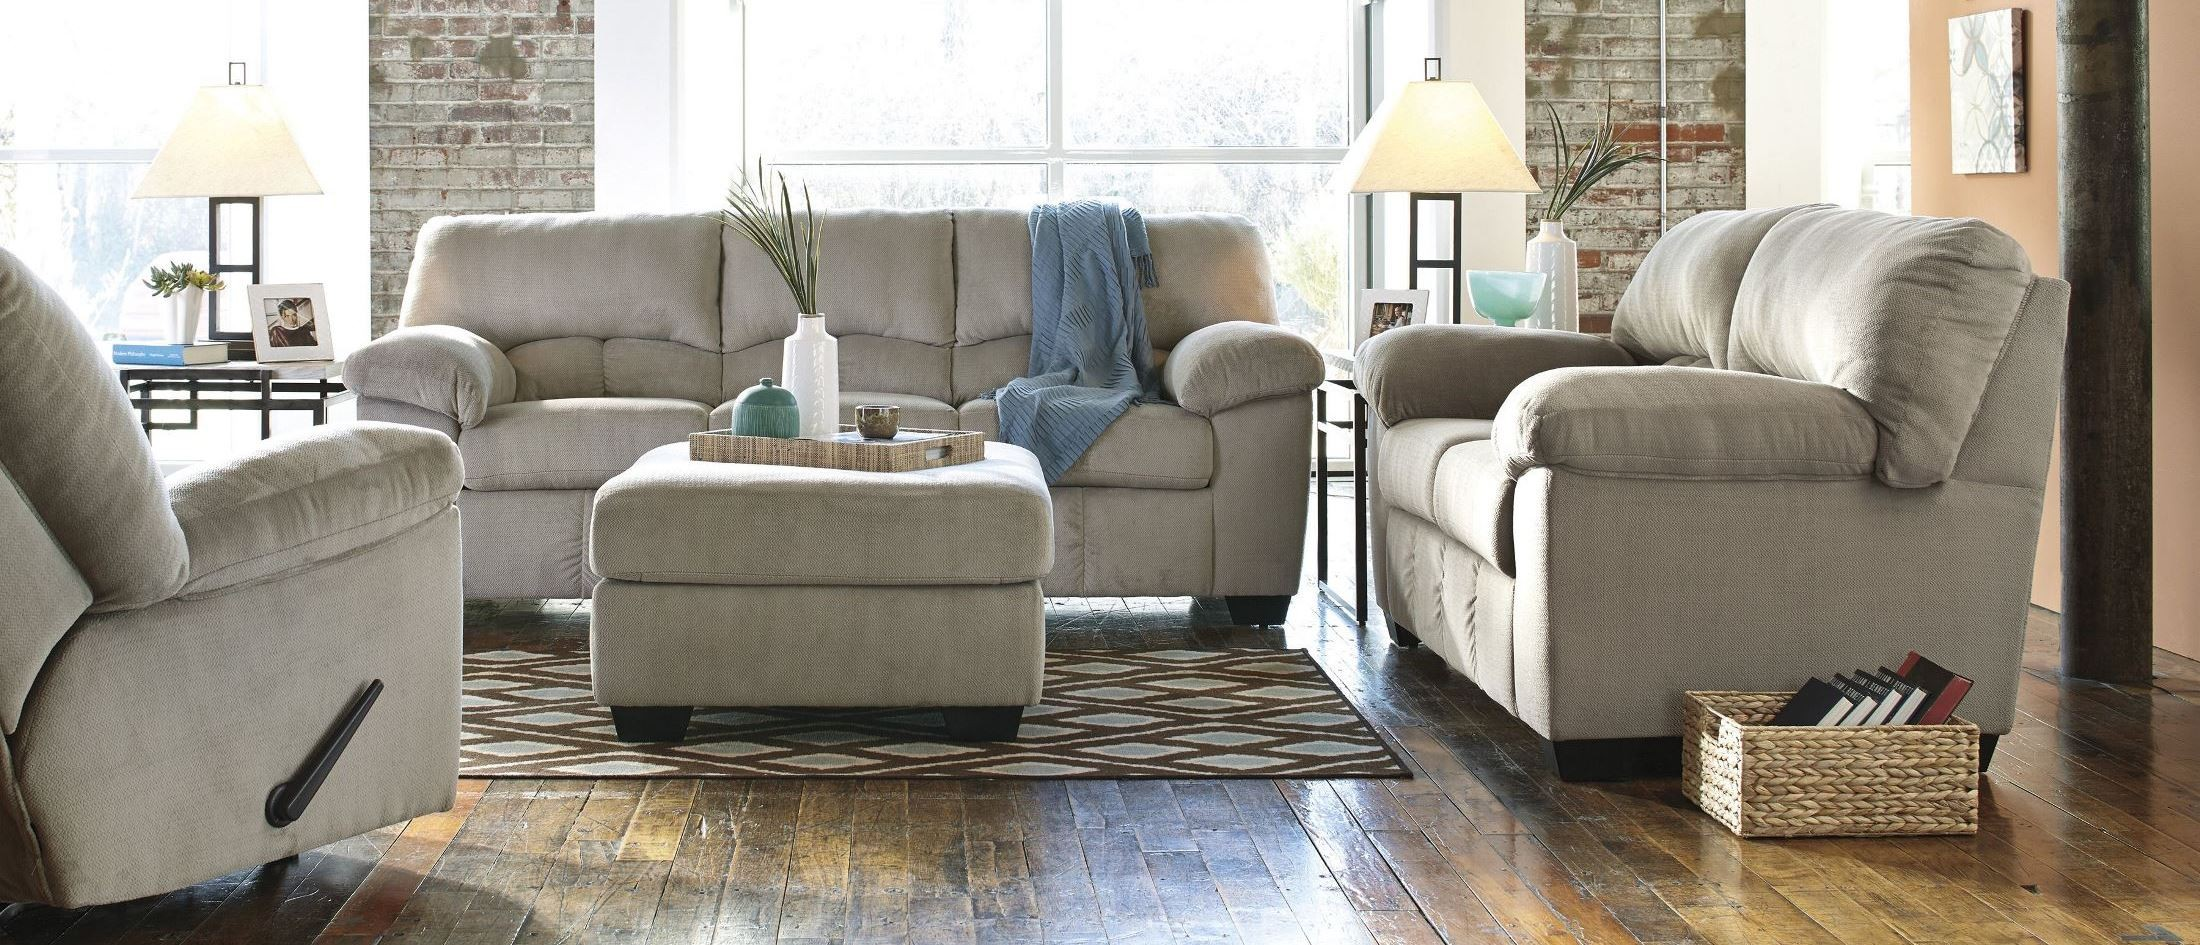 Dailey Alloy Living Room Set From Ashley 9540138